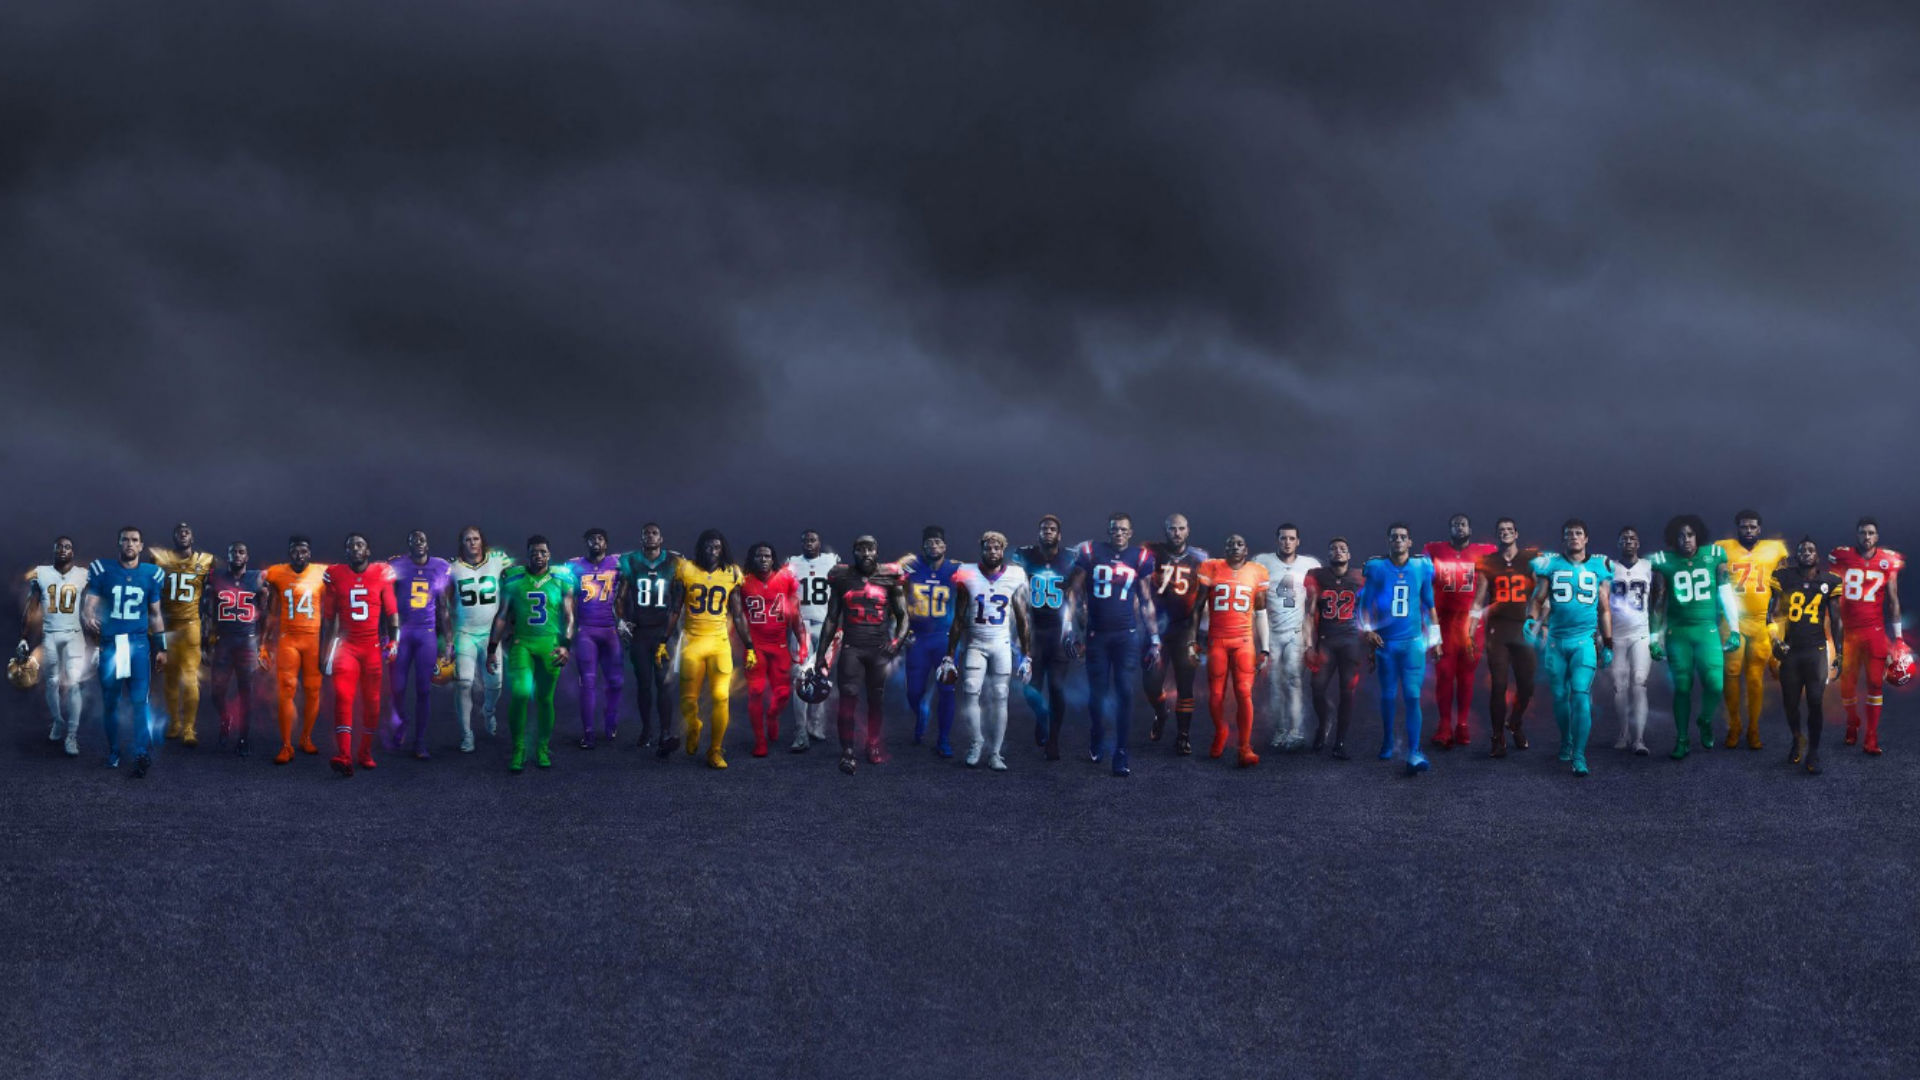 color rush 091316 twitter ftrjpg_1reeok00vds3q1dpf8j9yka9bu?t=598259271 in addition denver broncos uniforms coloring pages 1 on denver broncos uniforms coloring pages also denver broncos uniforms coloring pages 2 on denver broncos uniforms coloring pages in addition kansas city chiefs coloring pages on denver broncos uniforms coloring pages in addition denver broncos uniforms coloring pages 4 on denver broncos uniforms coloring pages